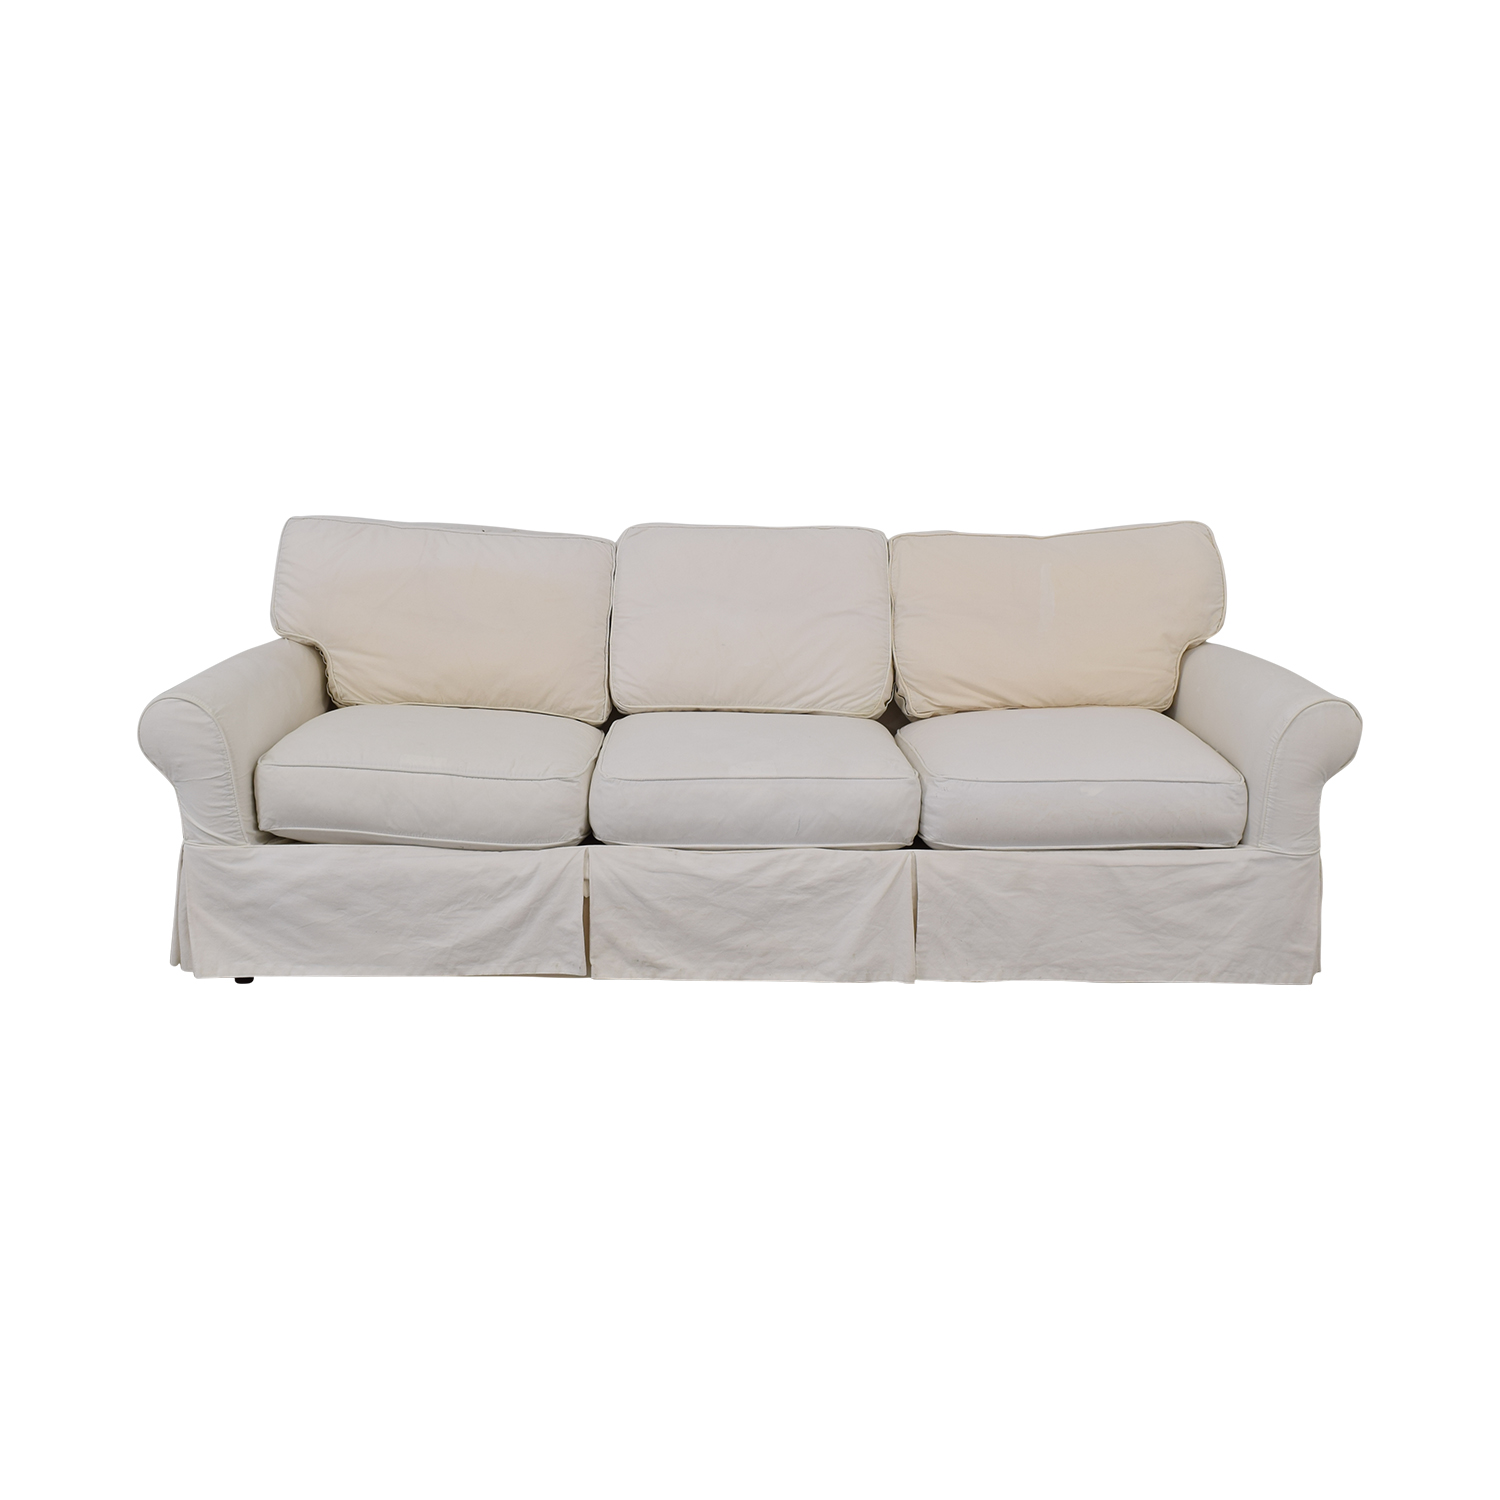 buy Crate & Barrel Slipcover Sofa Crate & Barrel Classic Sofas